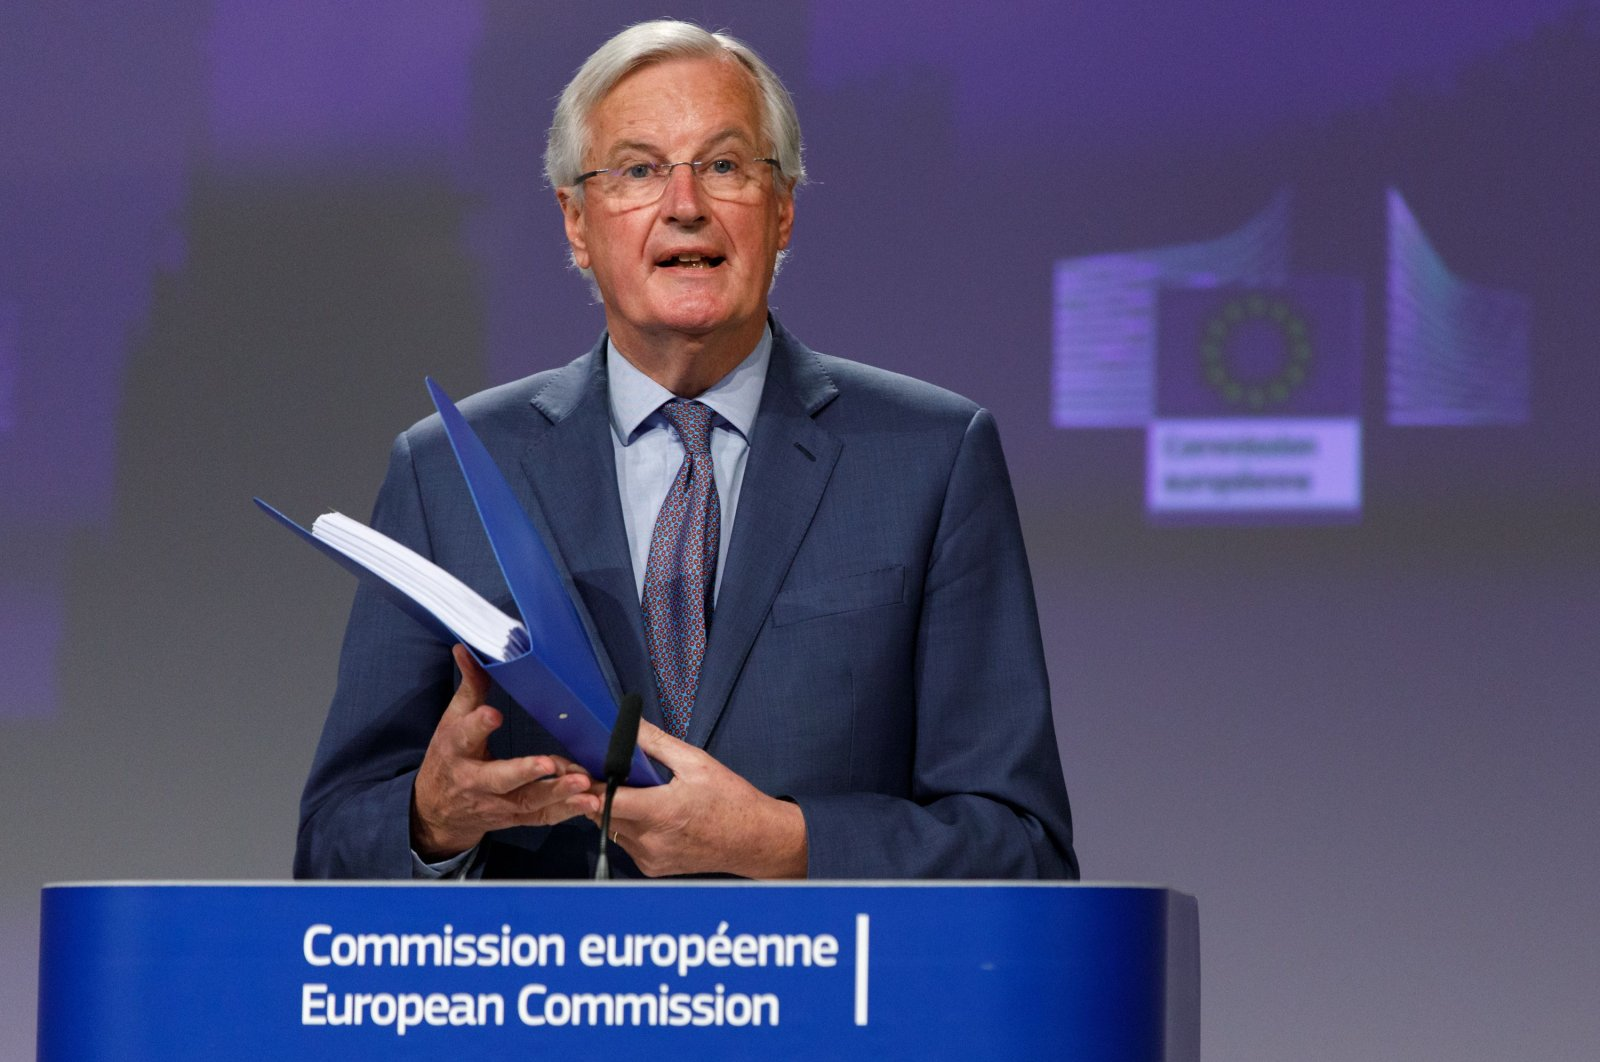 EU Chief Negotiator, Michel Barnier speaks about the trade agreement with the U.K. during a press conference in the European Commission, Brussels, April 24, 2020. (AFP Photo)